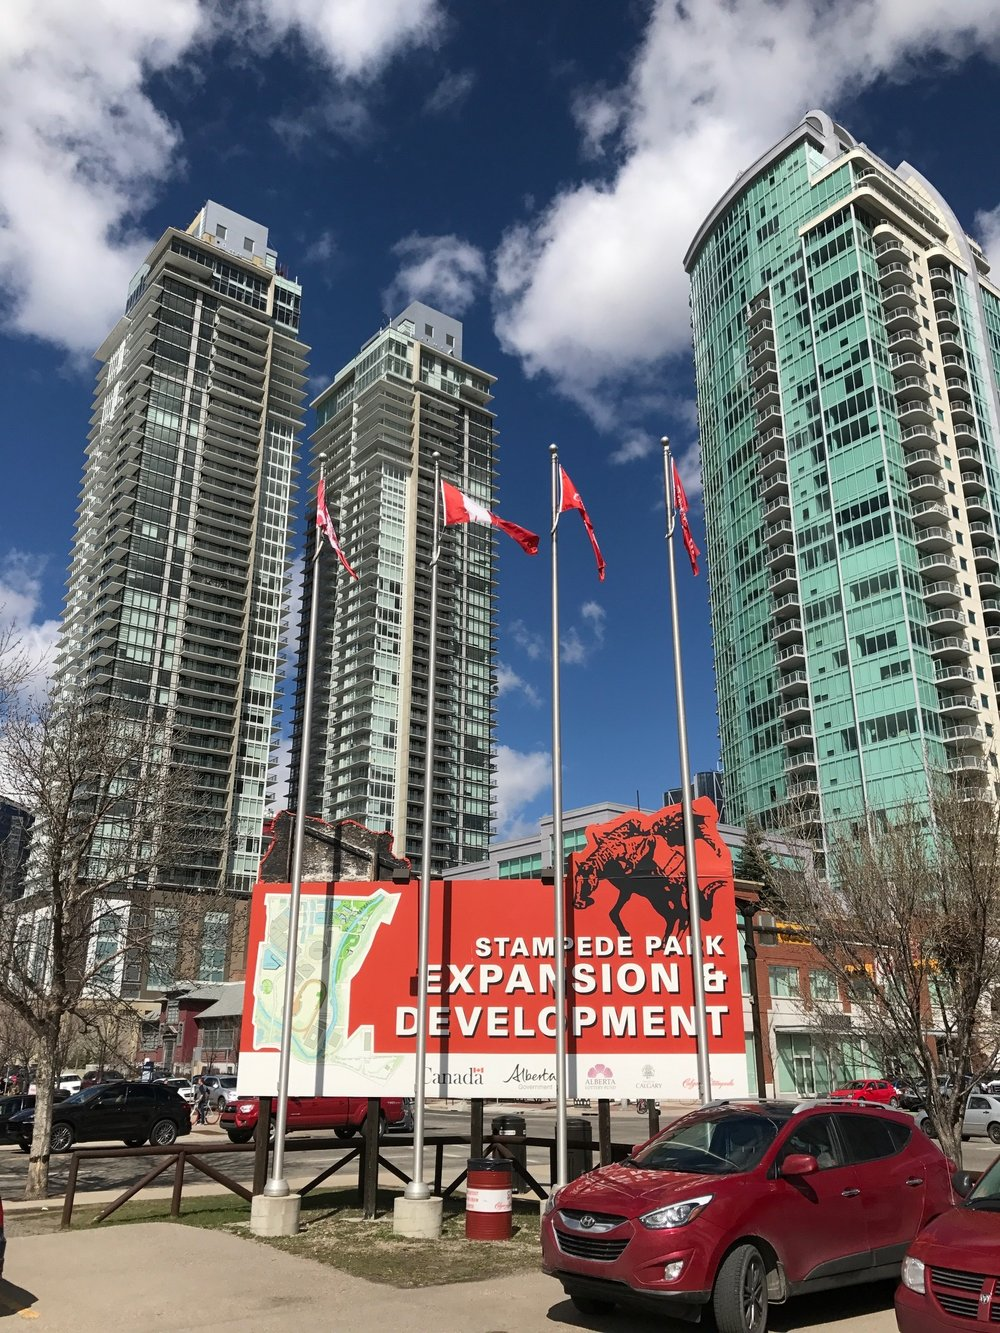 Arriva and Guardian condo towers were part of an ambitious plan for revitalization of East Victoria Park ten years ago. The Stampede Park Expansion & Development sign has been at the corner of 4th Street and 12th Ave SE for over 15 years.